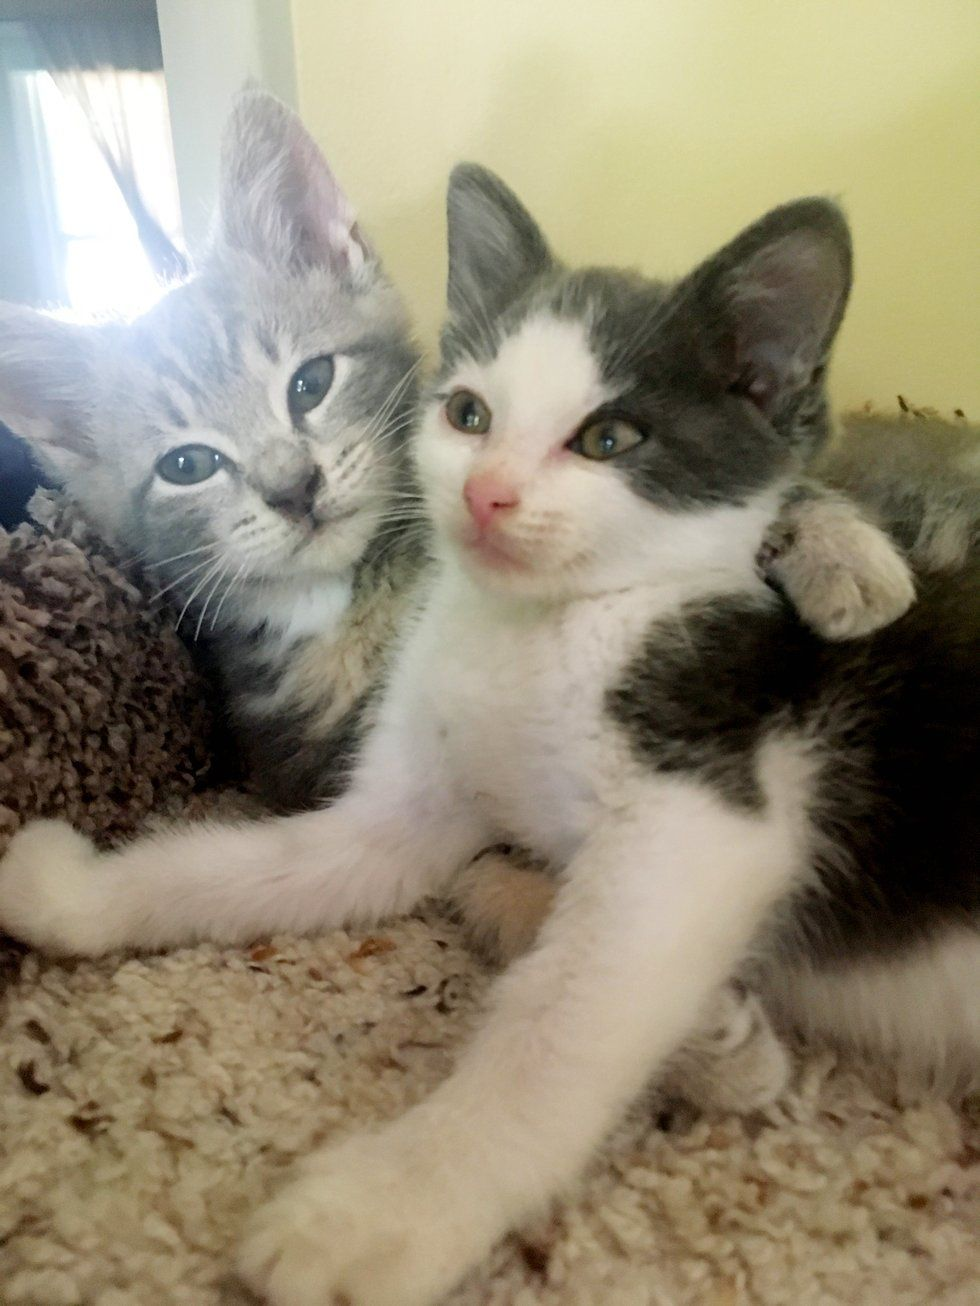 Kitten Who Lost His Siblings Finds New Brother To Cuddle They Won T Leave Each Other S Side Love Meow Kittensnames Kitten Kitty Games Cuddling